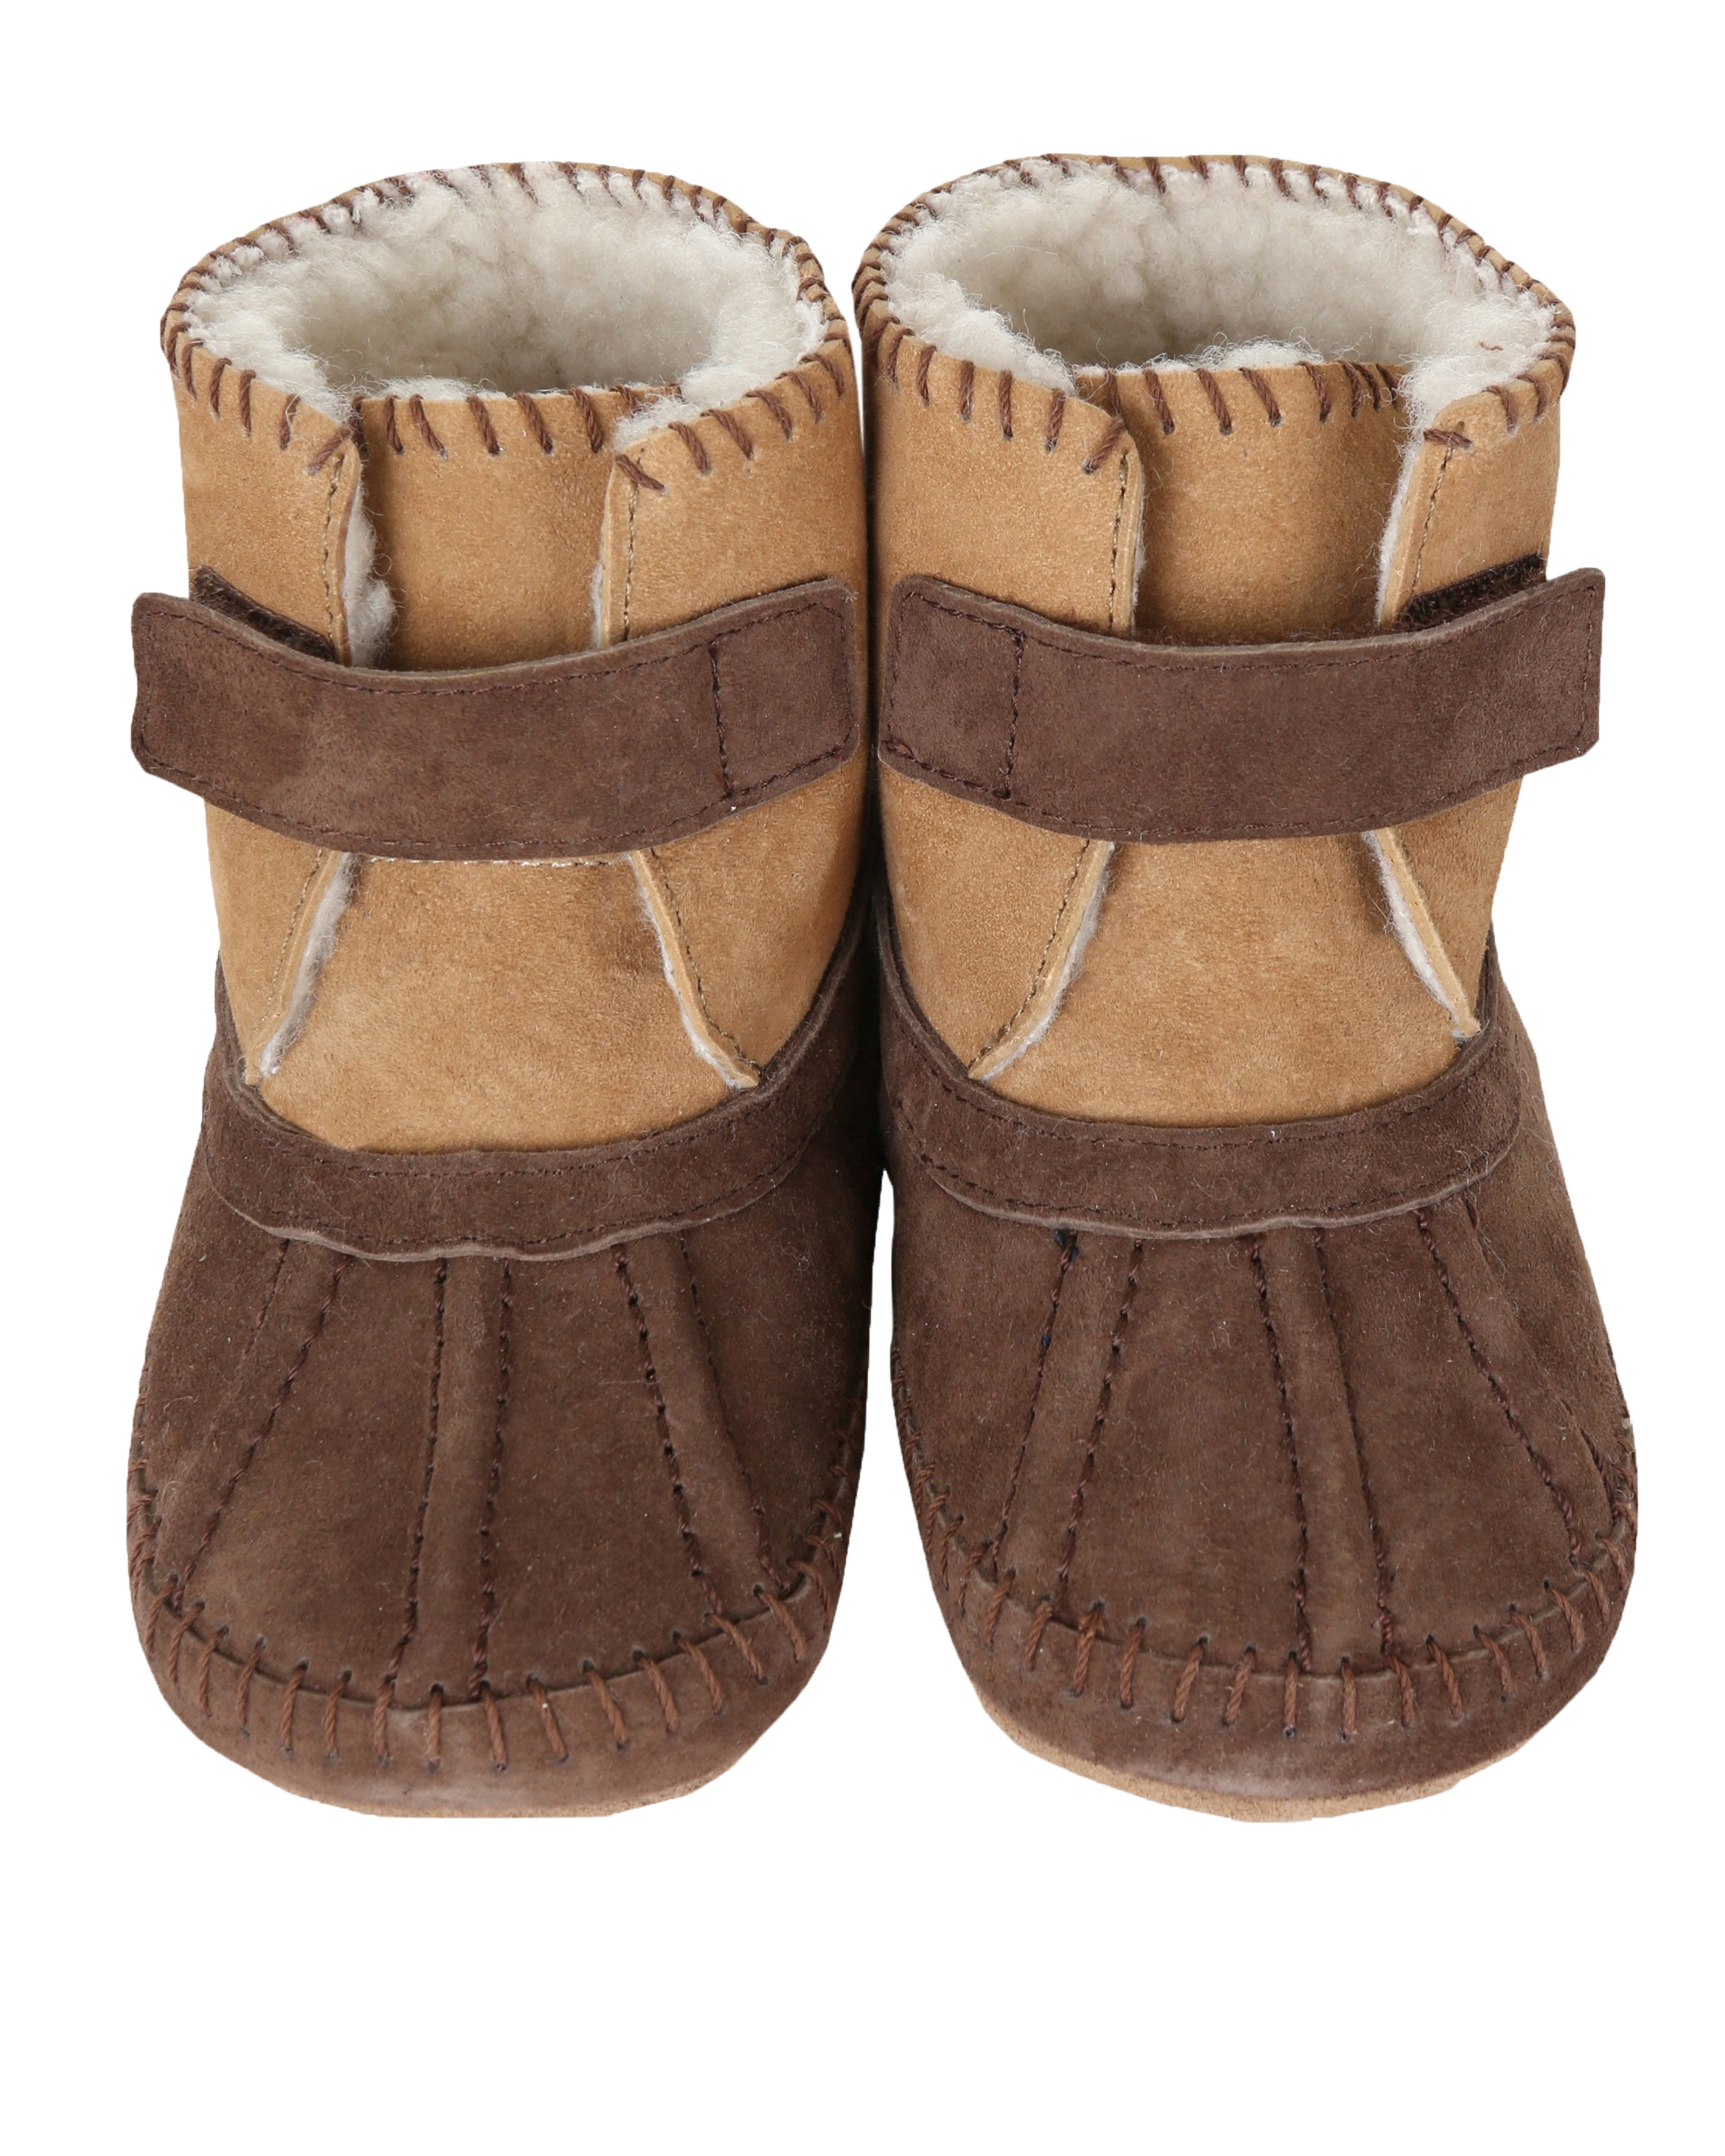 robeez-soft-sole-baby-shoes-cozy-bootie-brown